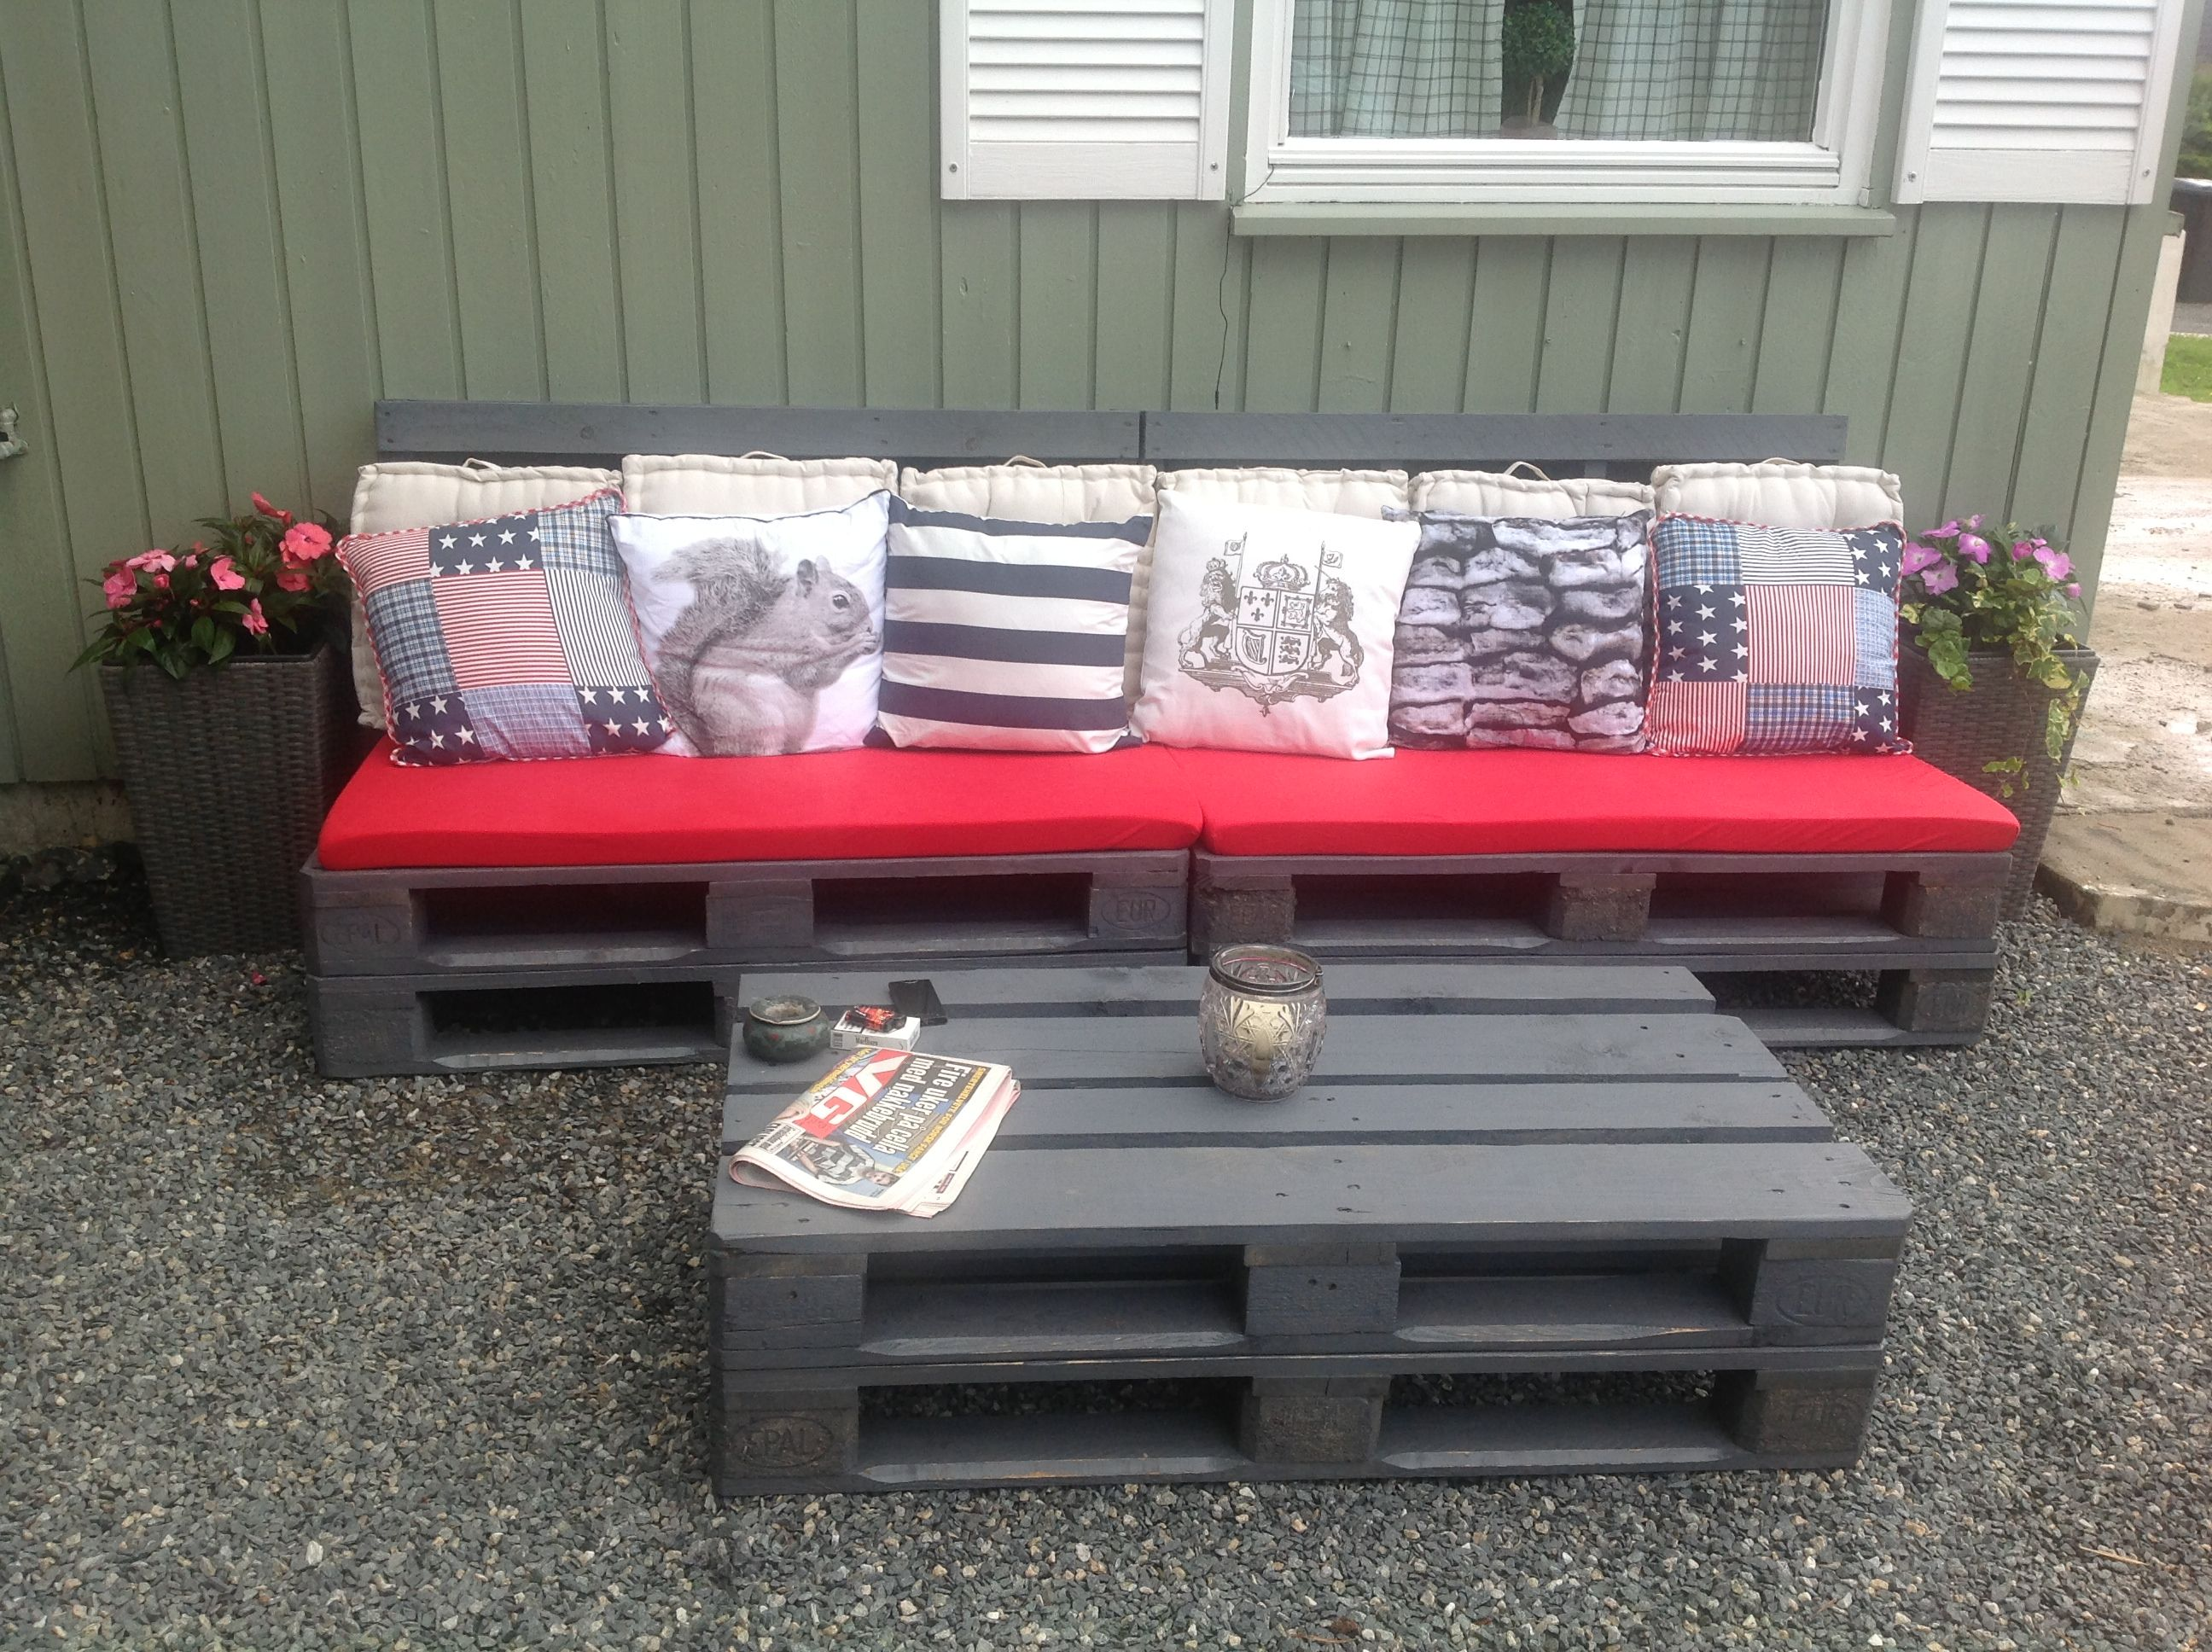 Garden Furniture Made From Crates europallets. | pallets ideas | pinterest | pallets, pallet patio